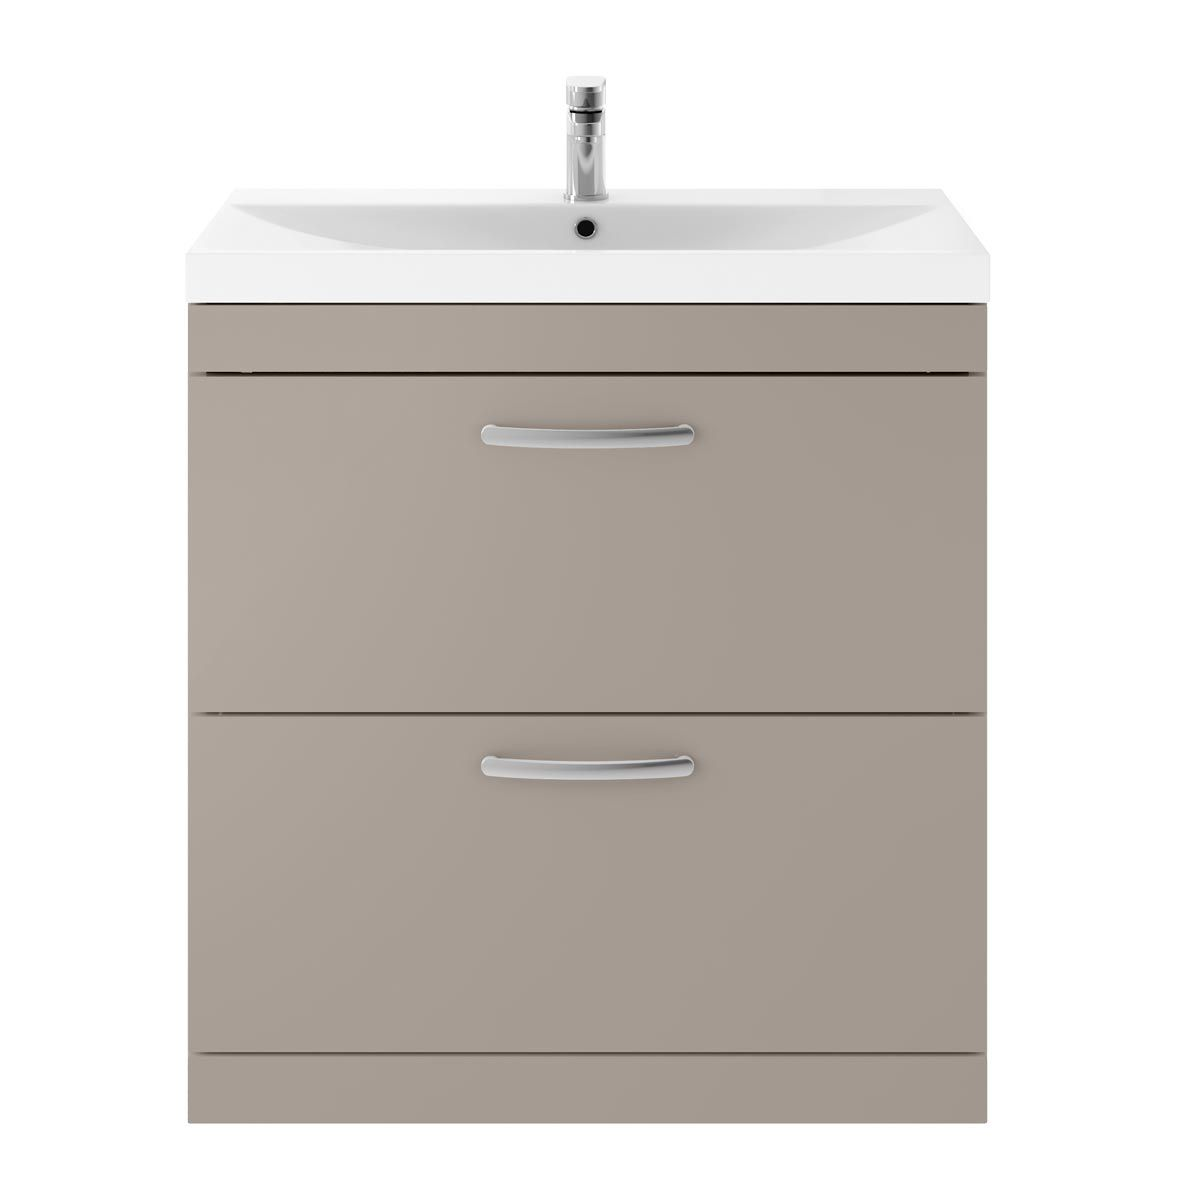 Nuie Athena Stone Grey 2 Drawer Floor Standing Vanity Unit with 50mm Profile Basin 800mm